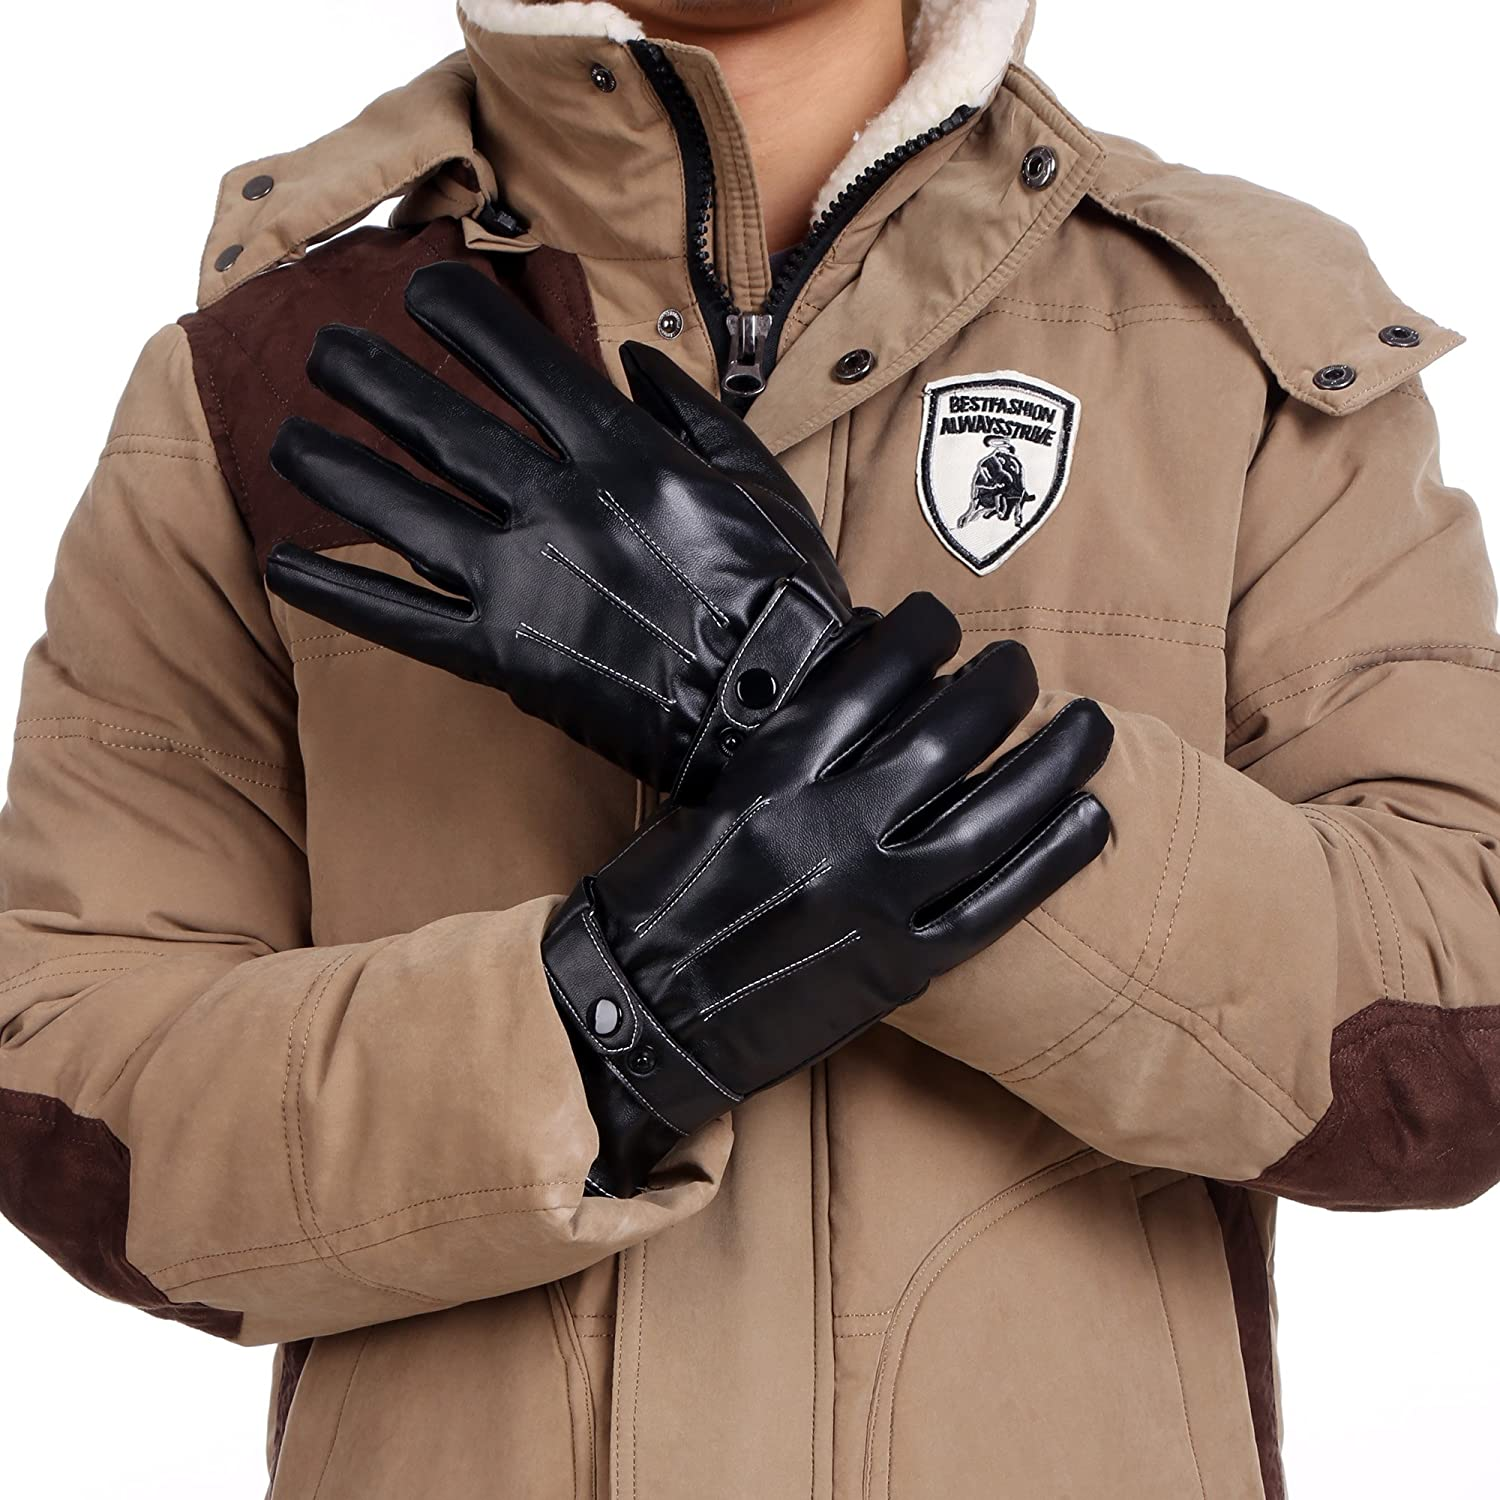 Synthetic leather driving gloves - Zeagoo Men S Fleece Lined Synthetic Leather Gloves Skiing Cycling Driving Riding Black At Amazon Men S Clothing Store